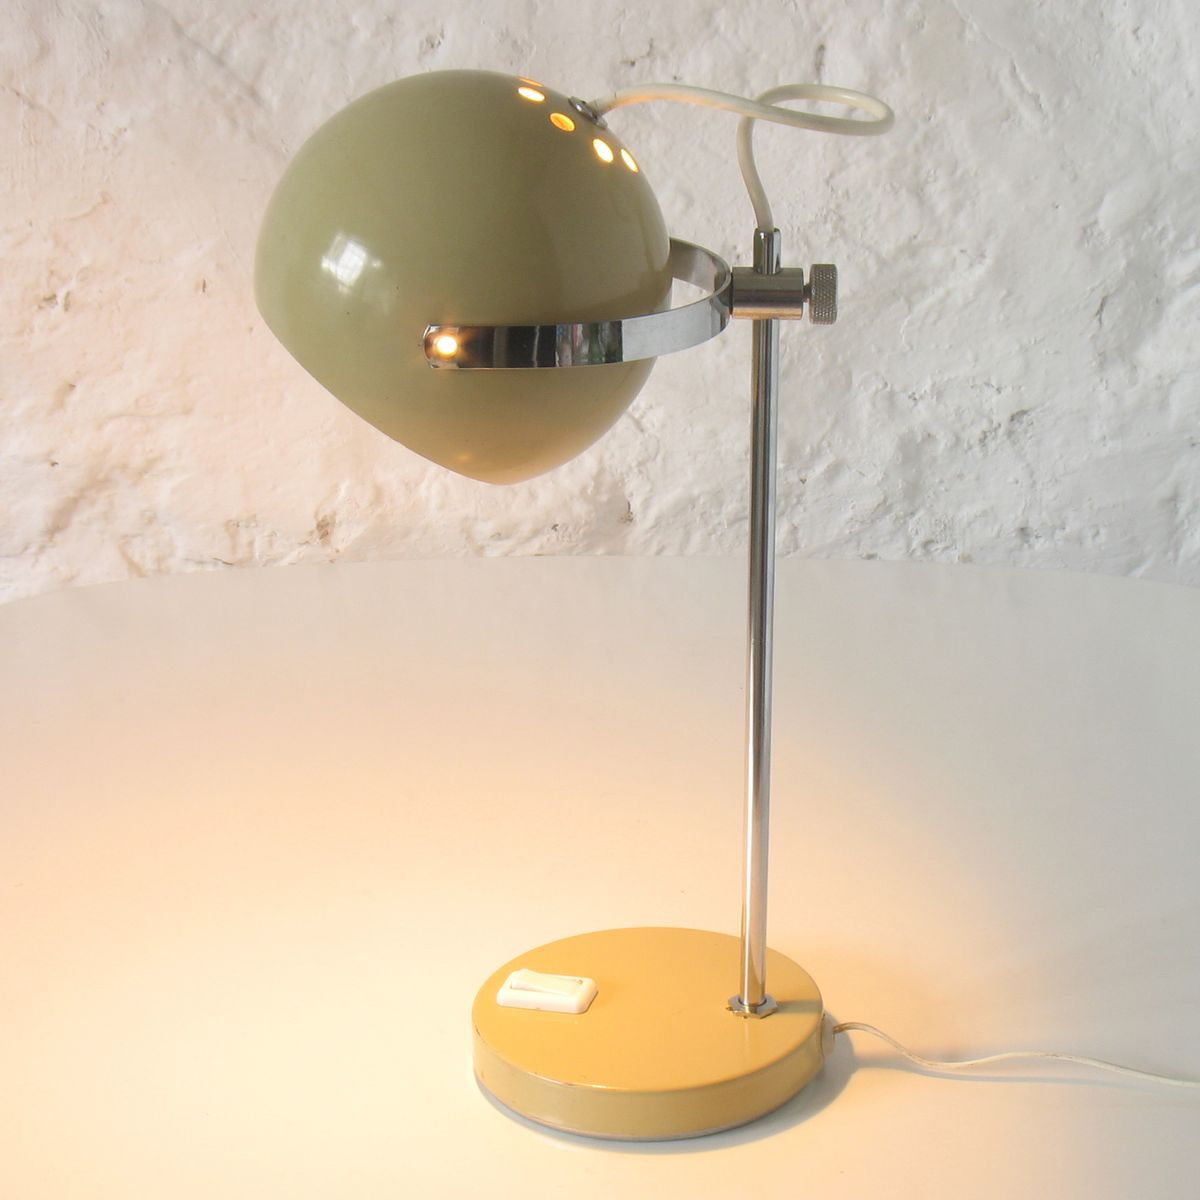 space age table lamp 1970s for sale at pamono. Black Bedroom Furniture Sets. Home Design Ideas